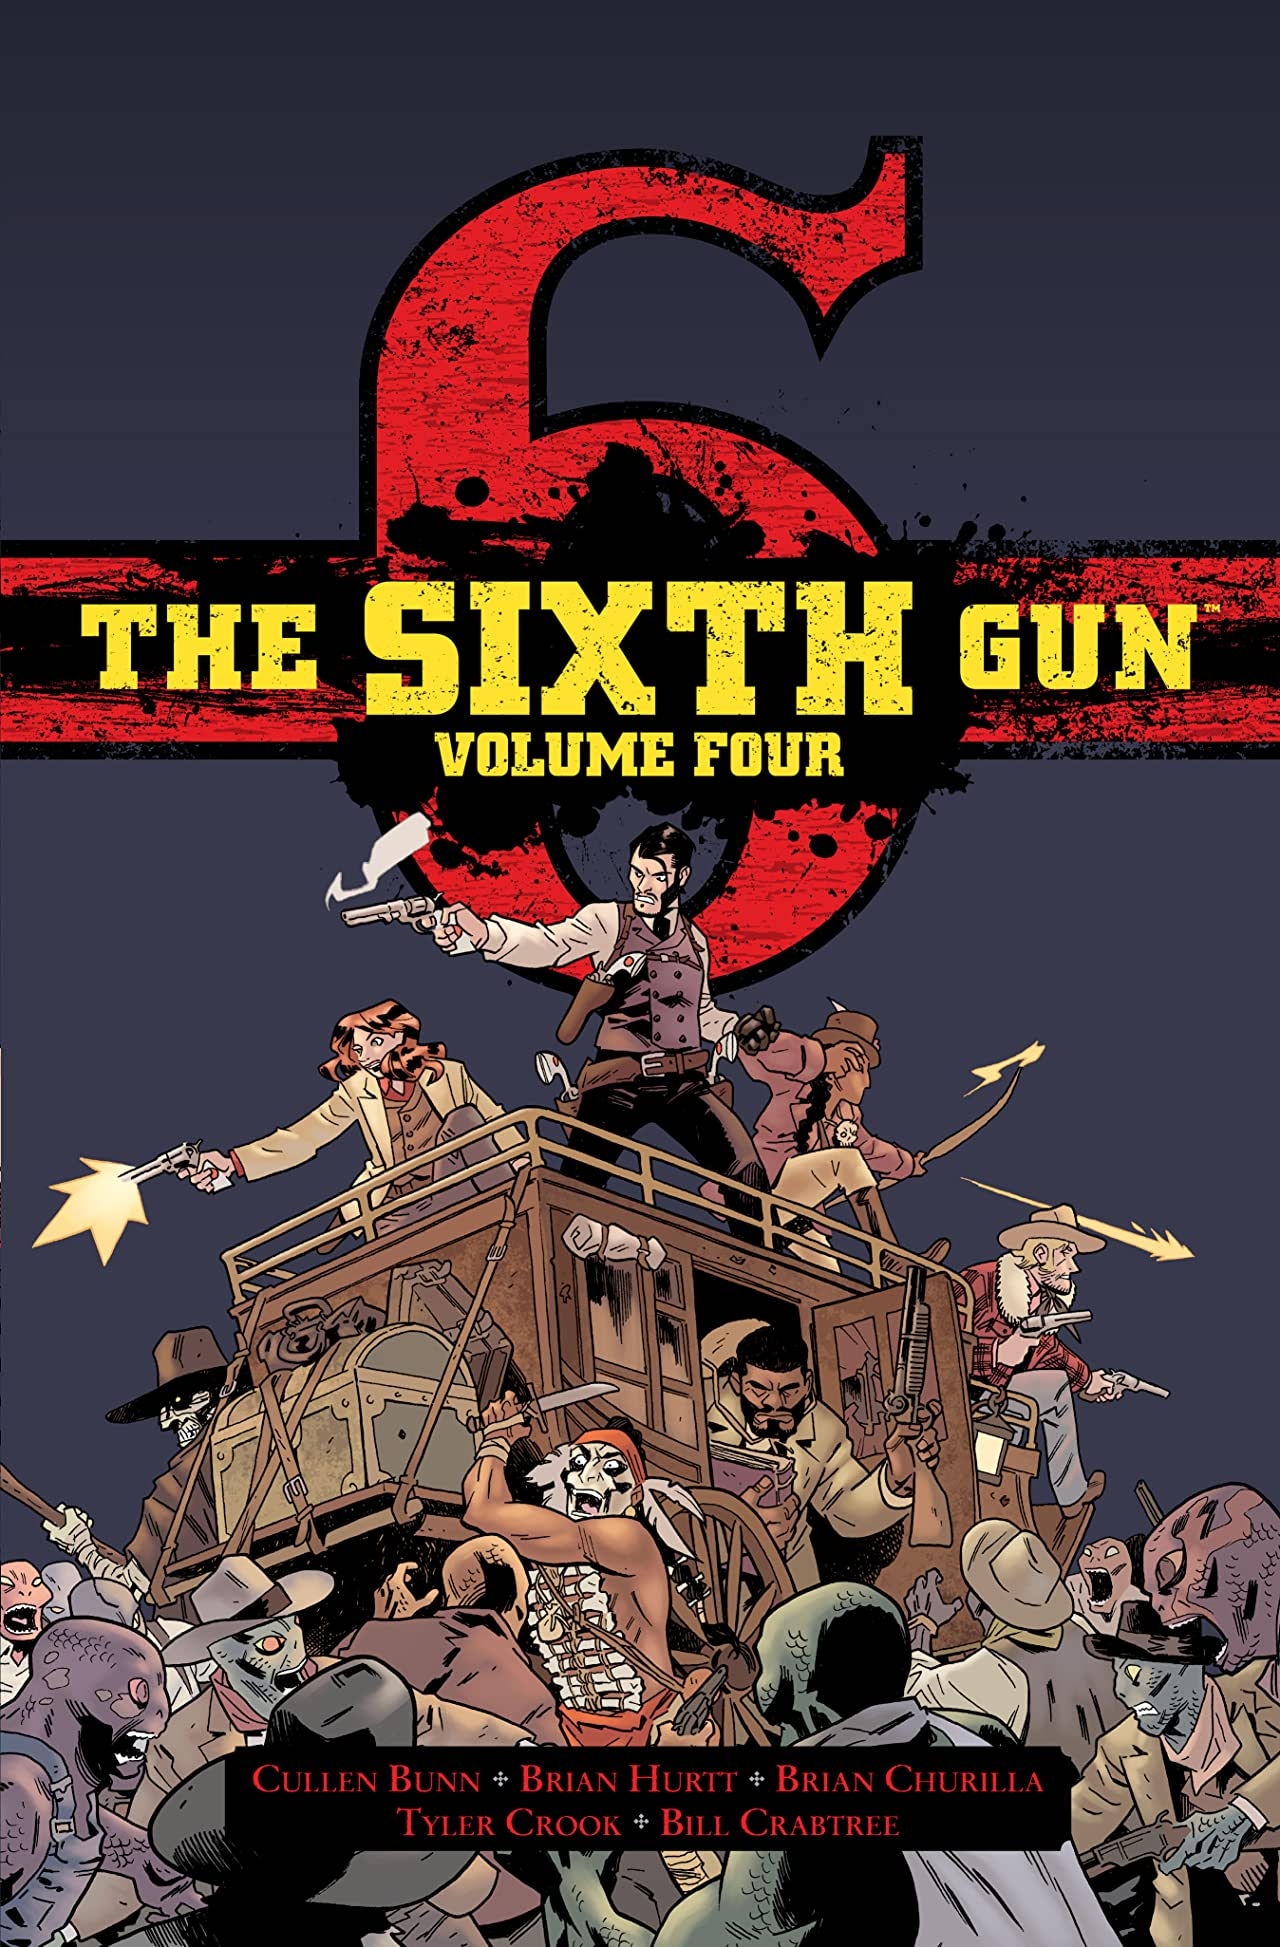 The Sixth Gun Vol. 4: Deluxe Edition